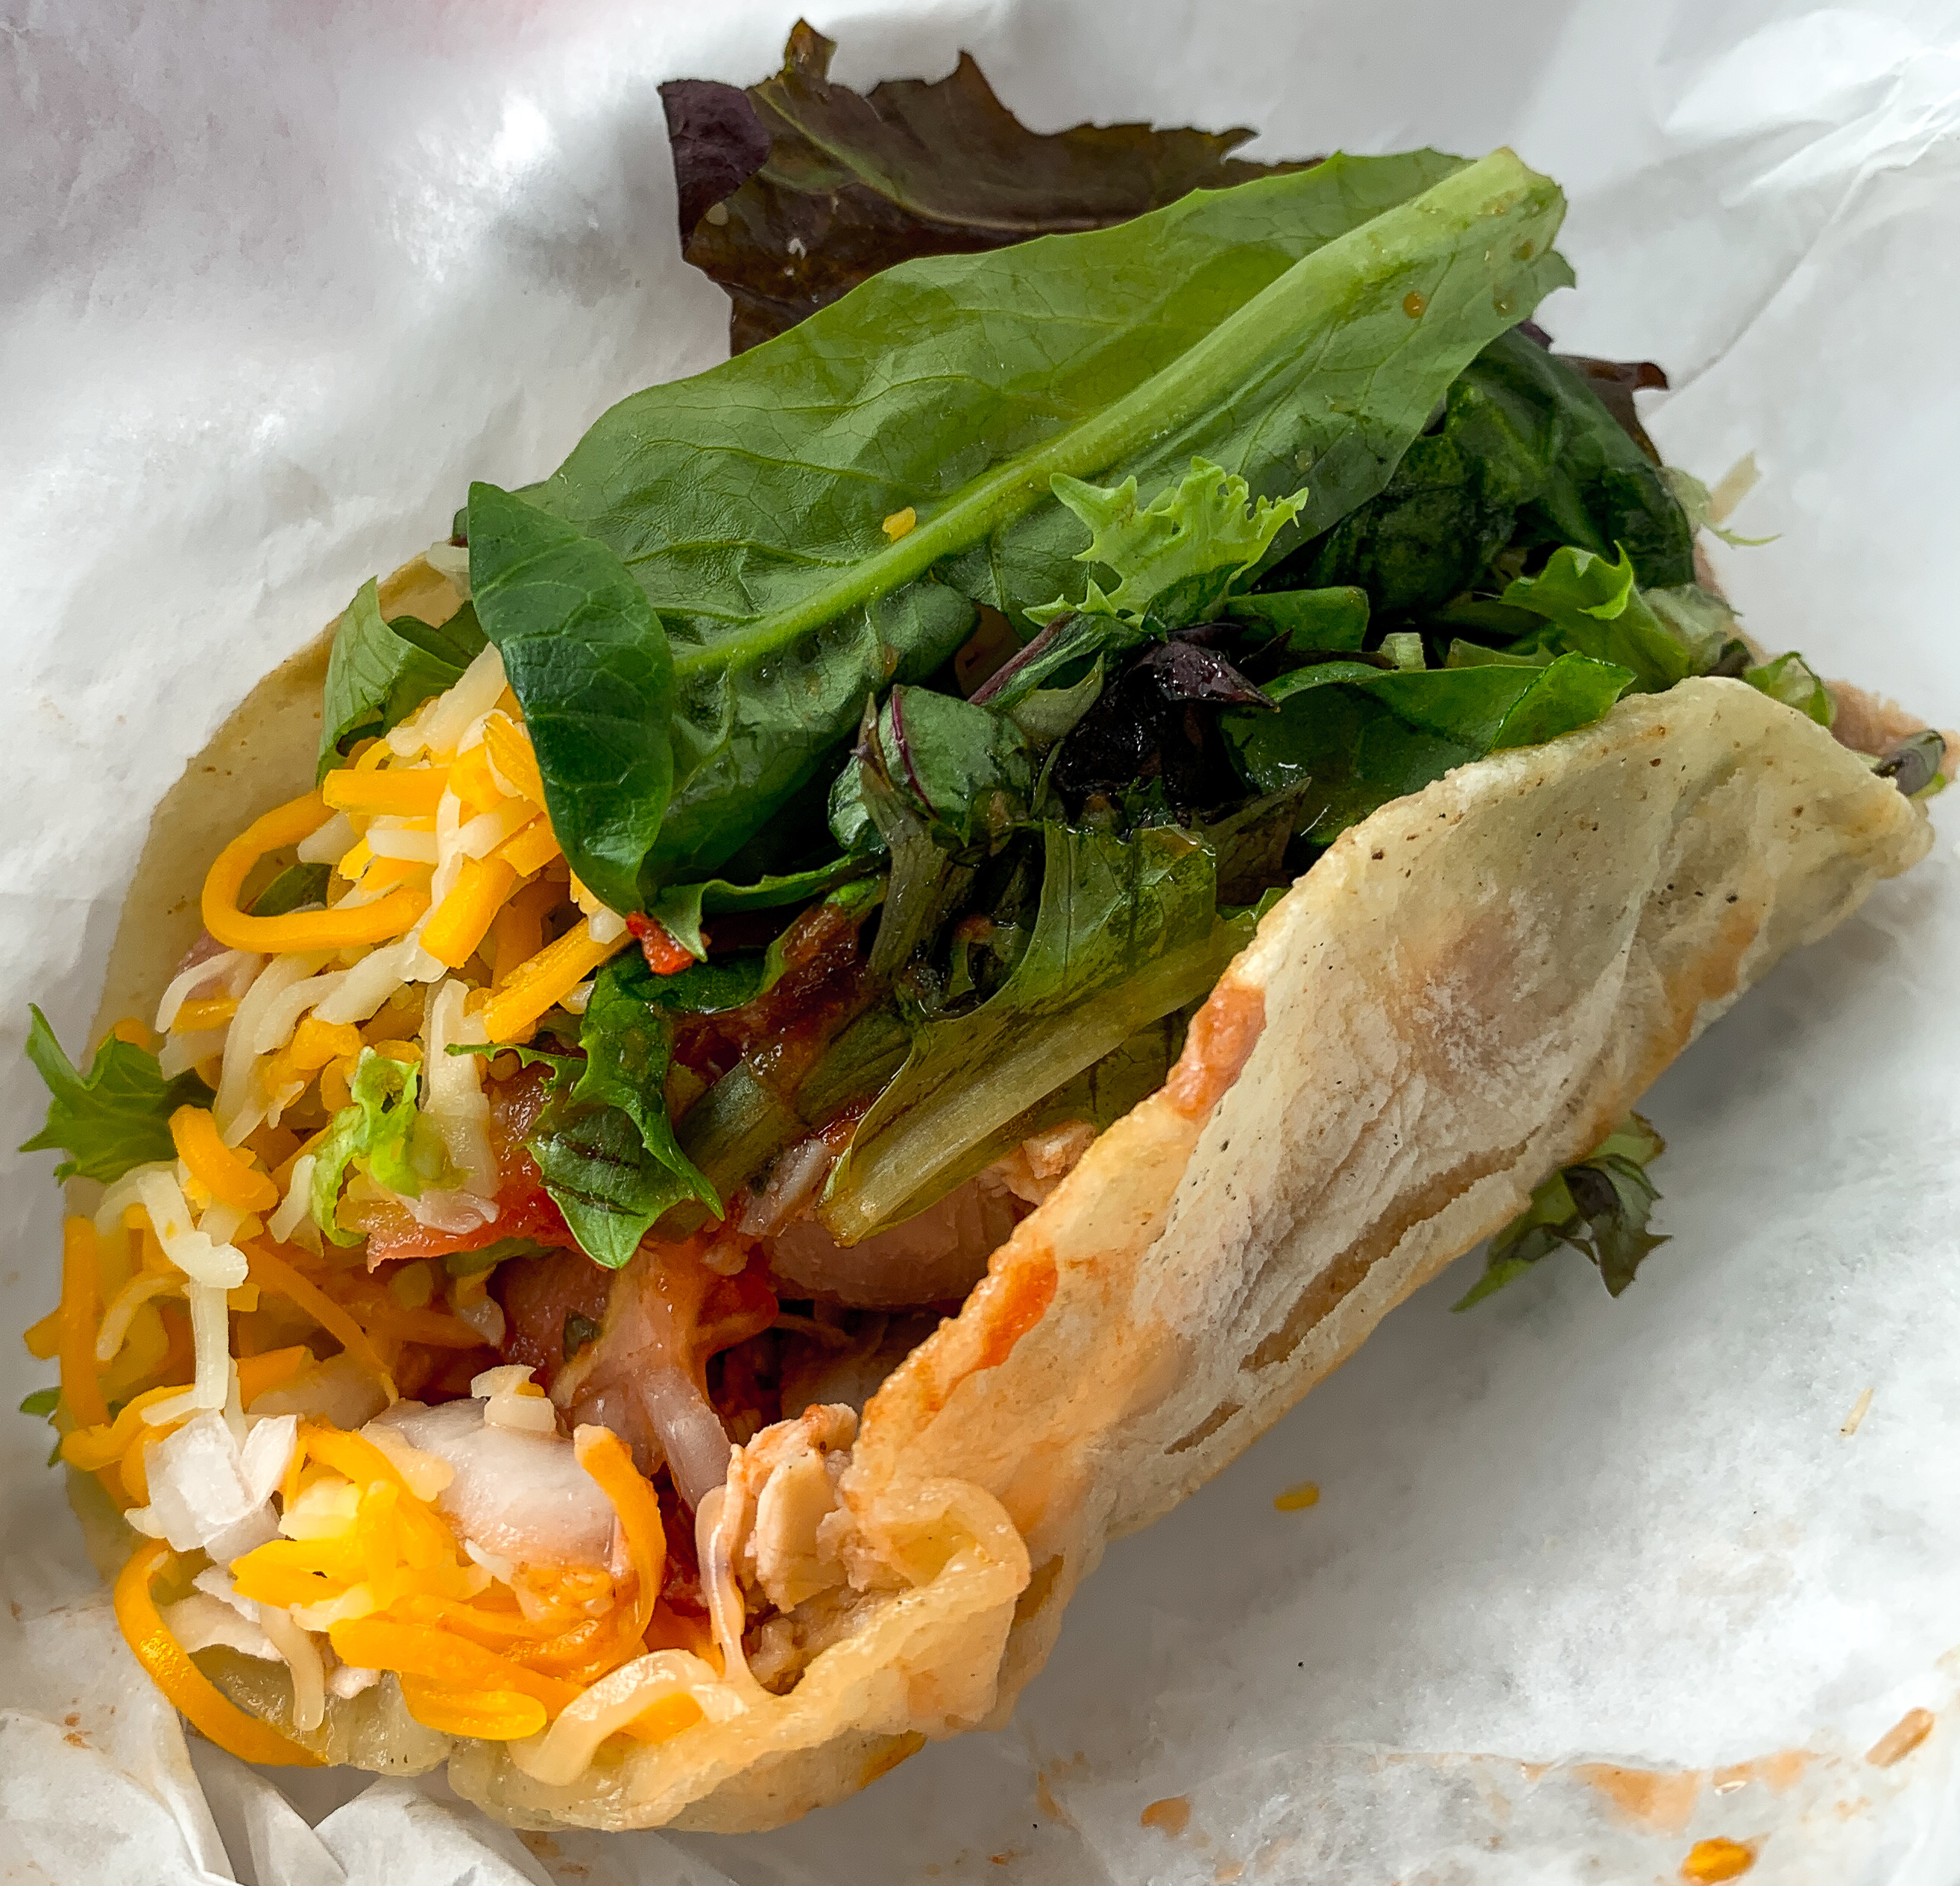 Loreto's Turkey Taco. Photo by Jay Keyes.